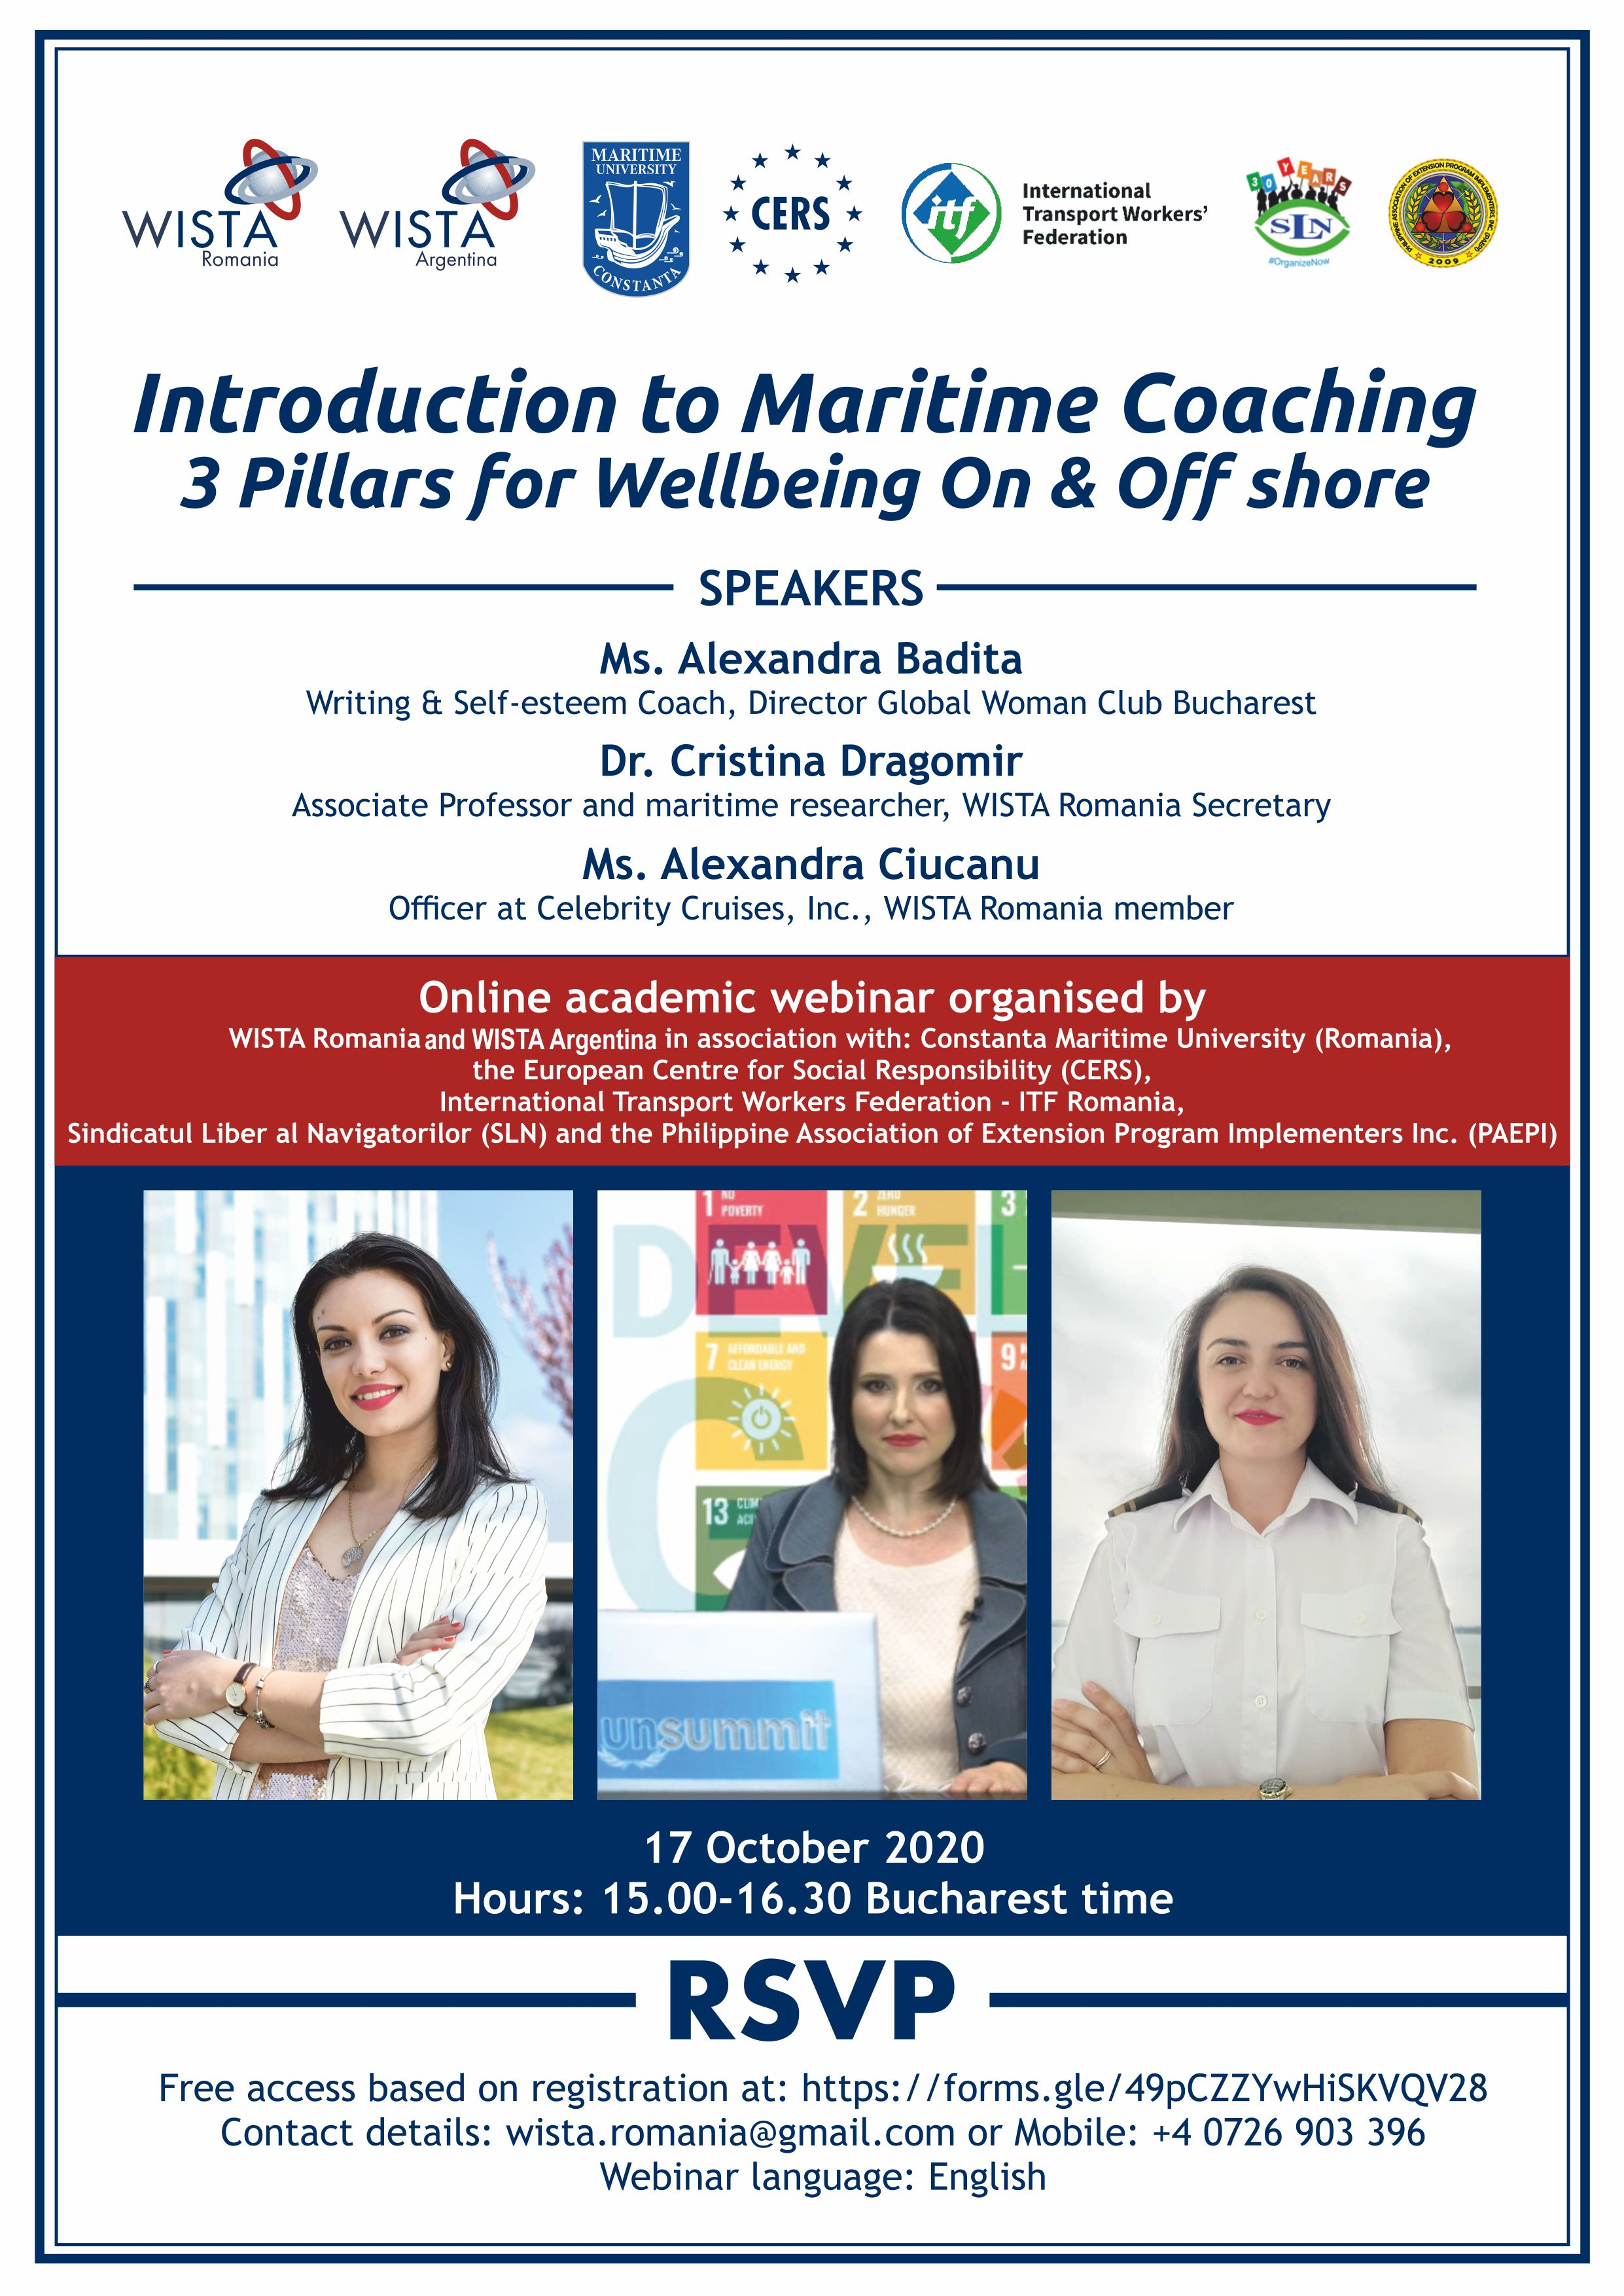 Introduction to Maritime Coaching